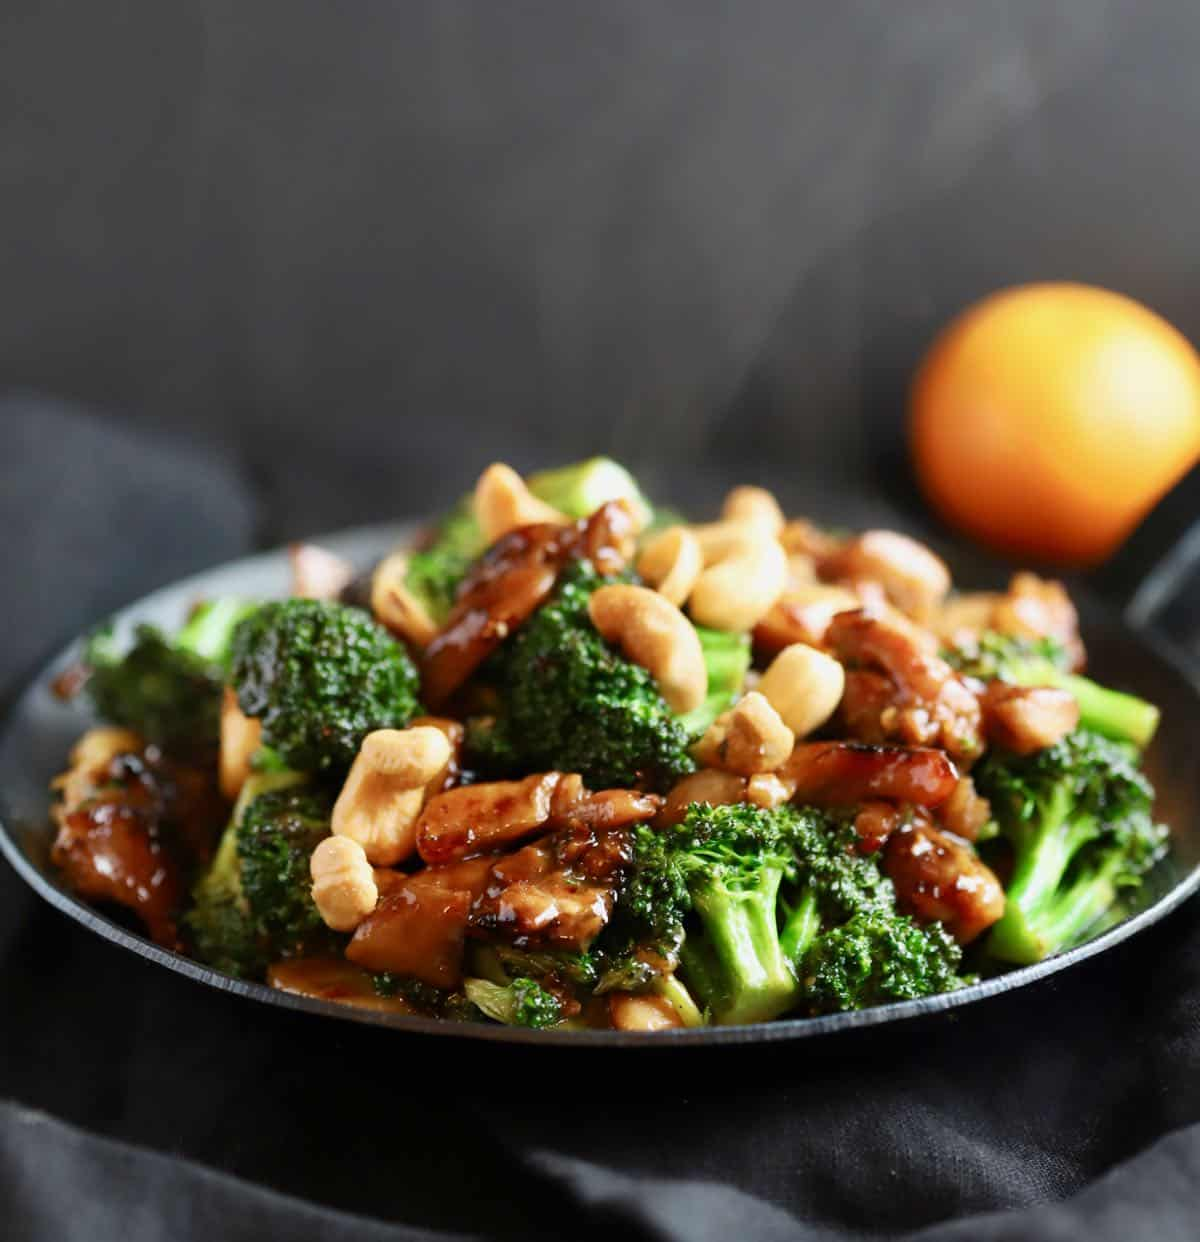 Chicken broccoli stir-fry topped with cashews in a black pan.